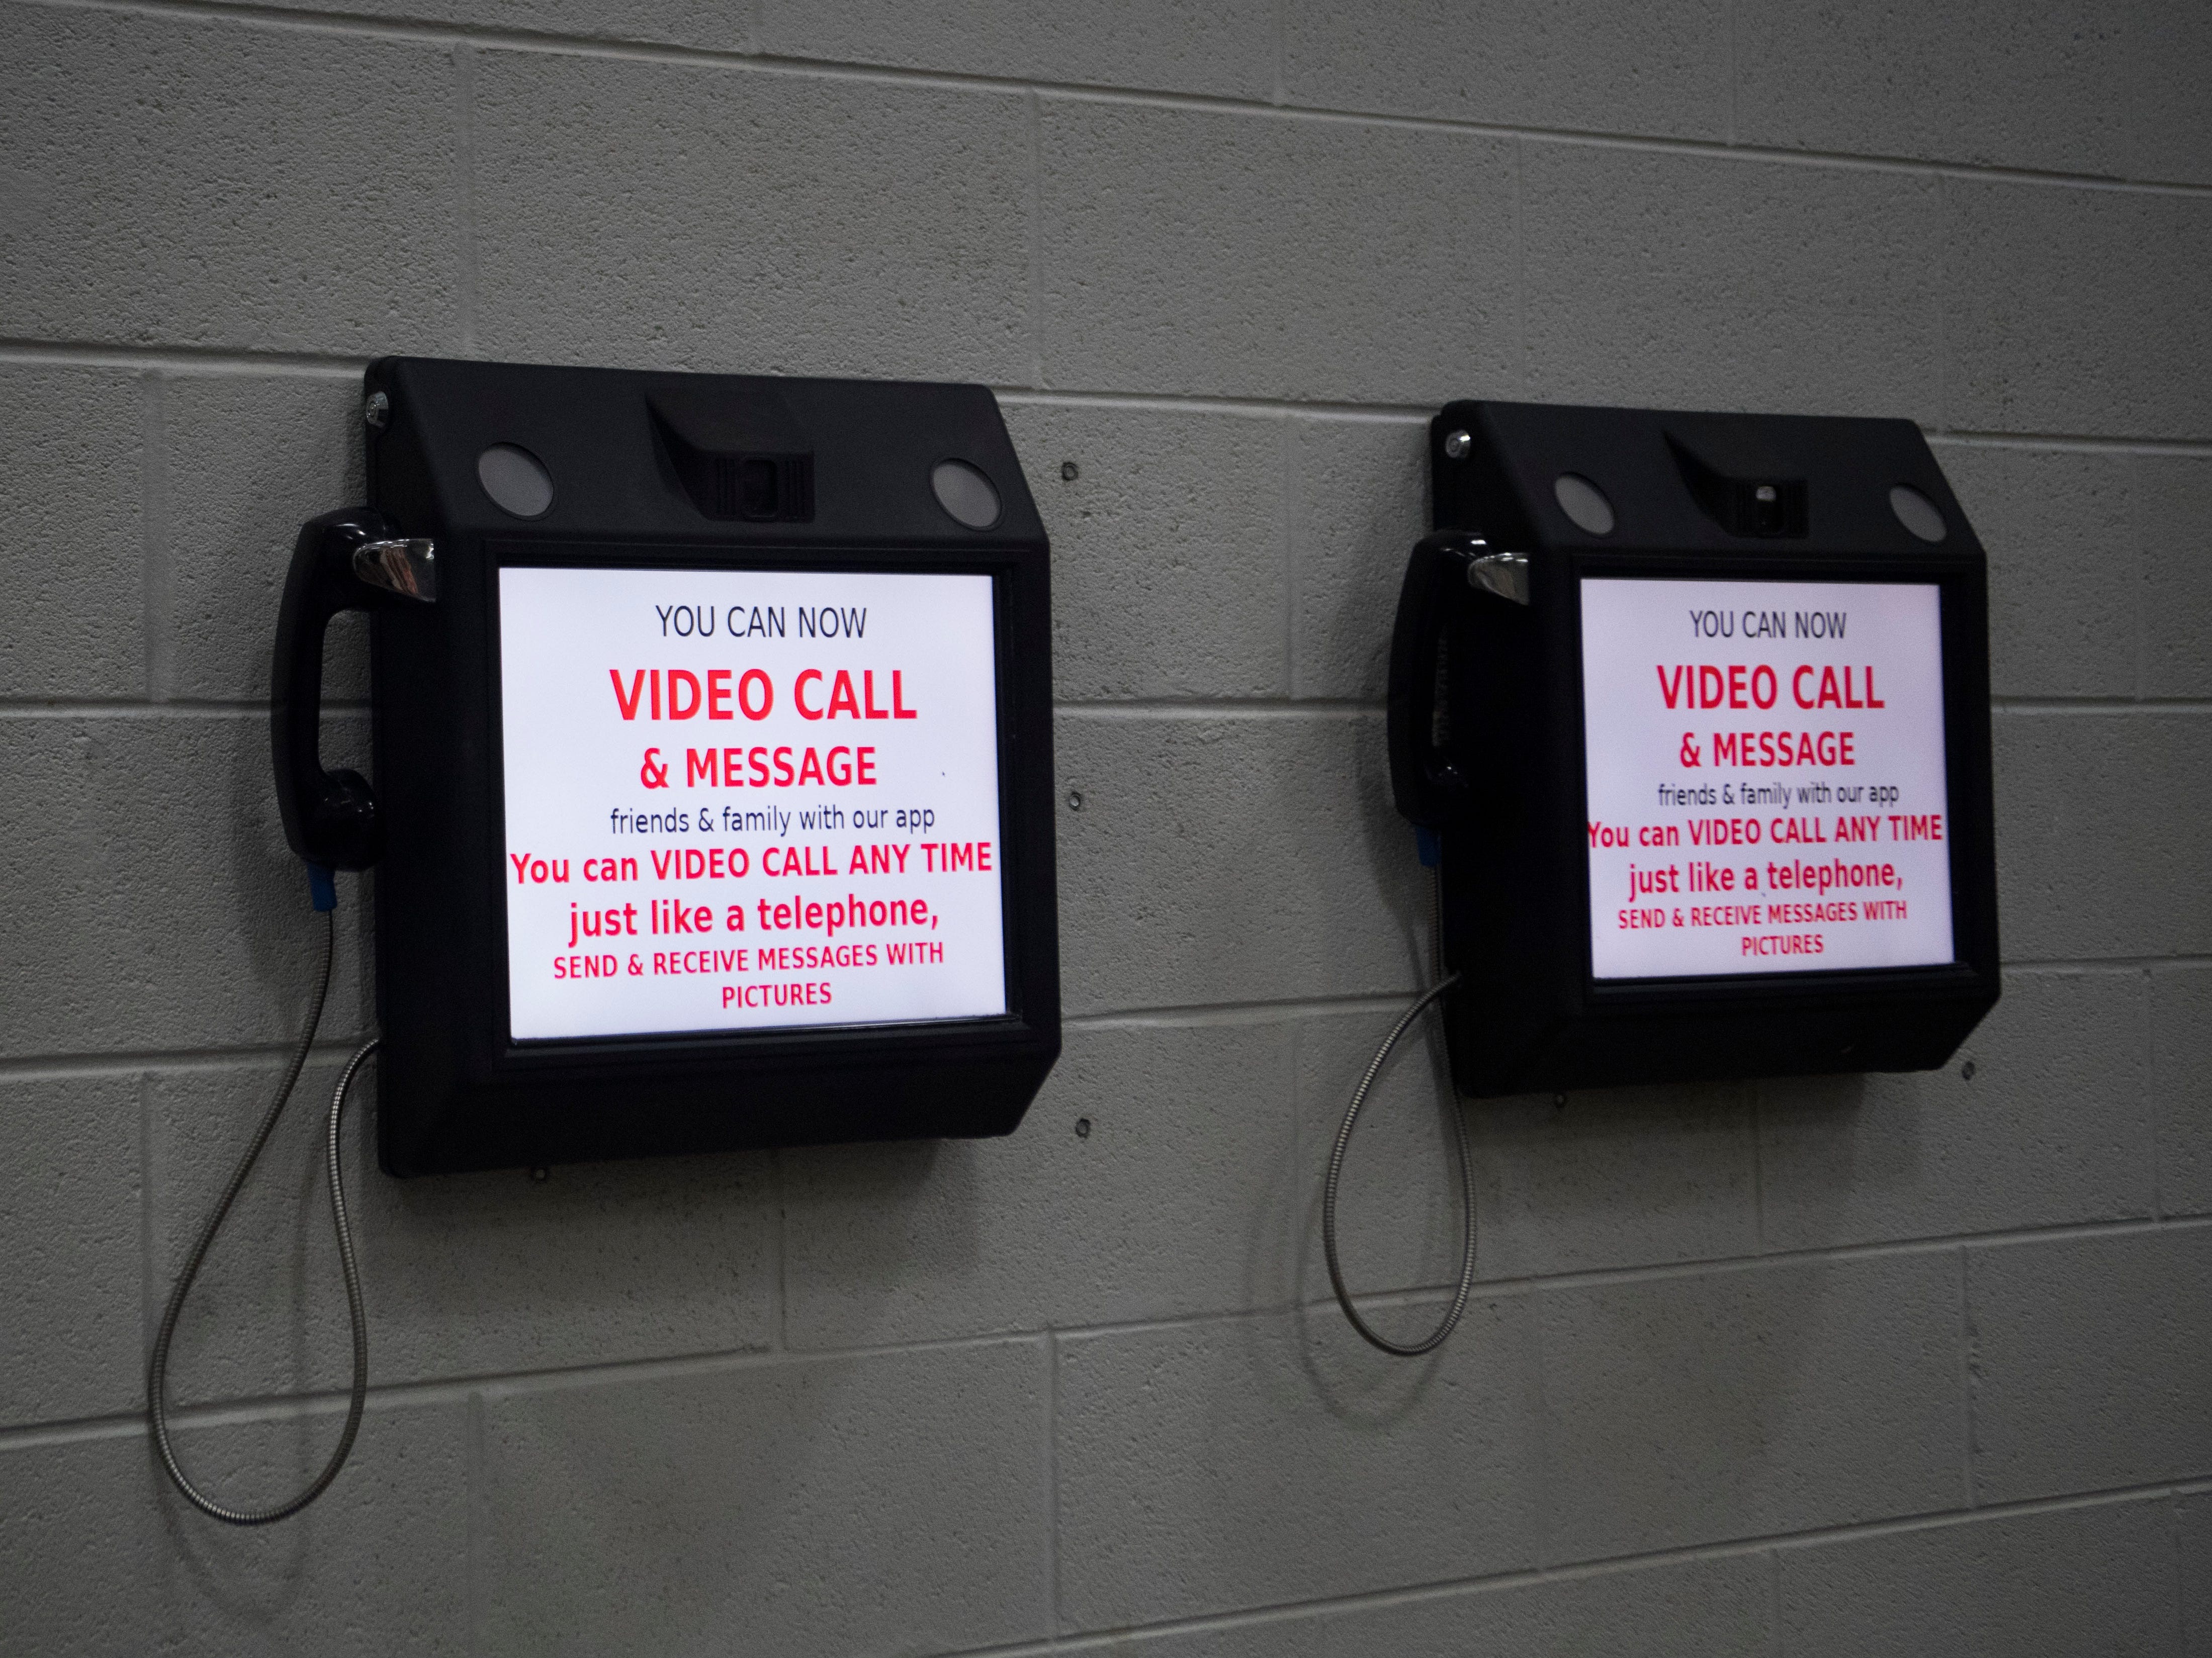 Video visitation units are seen in a pod at the Roane County Sheriff's Office and Detention Center Wednesday, May 30, 2018.